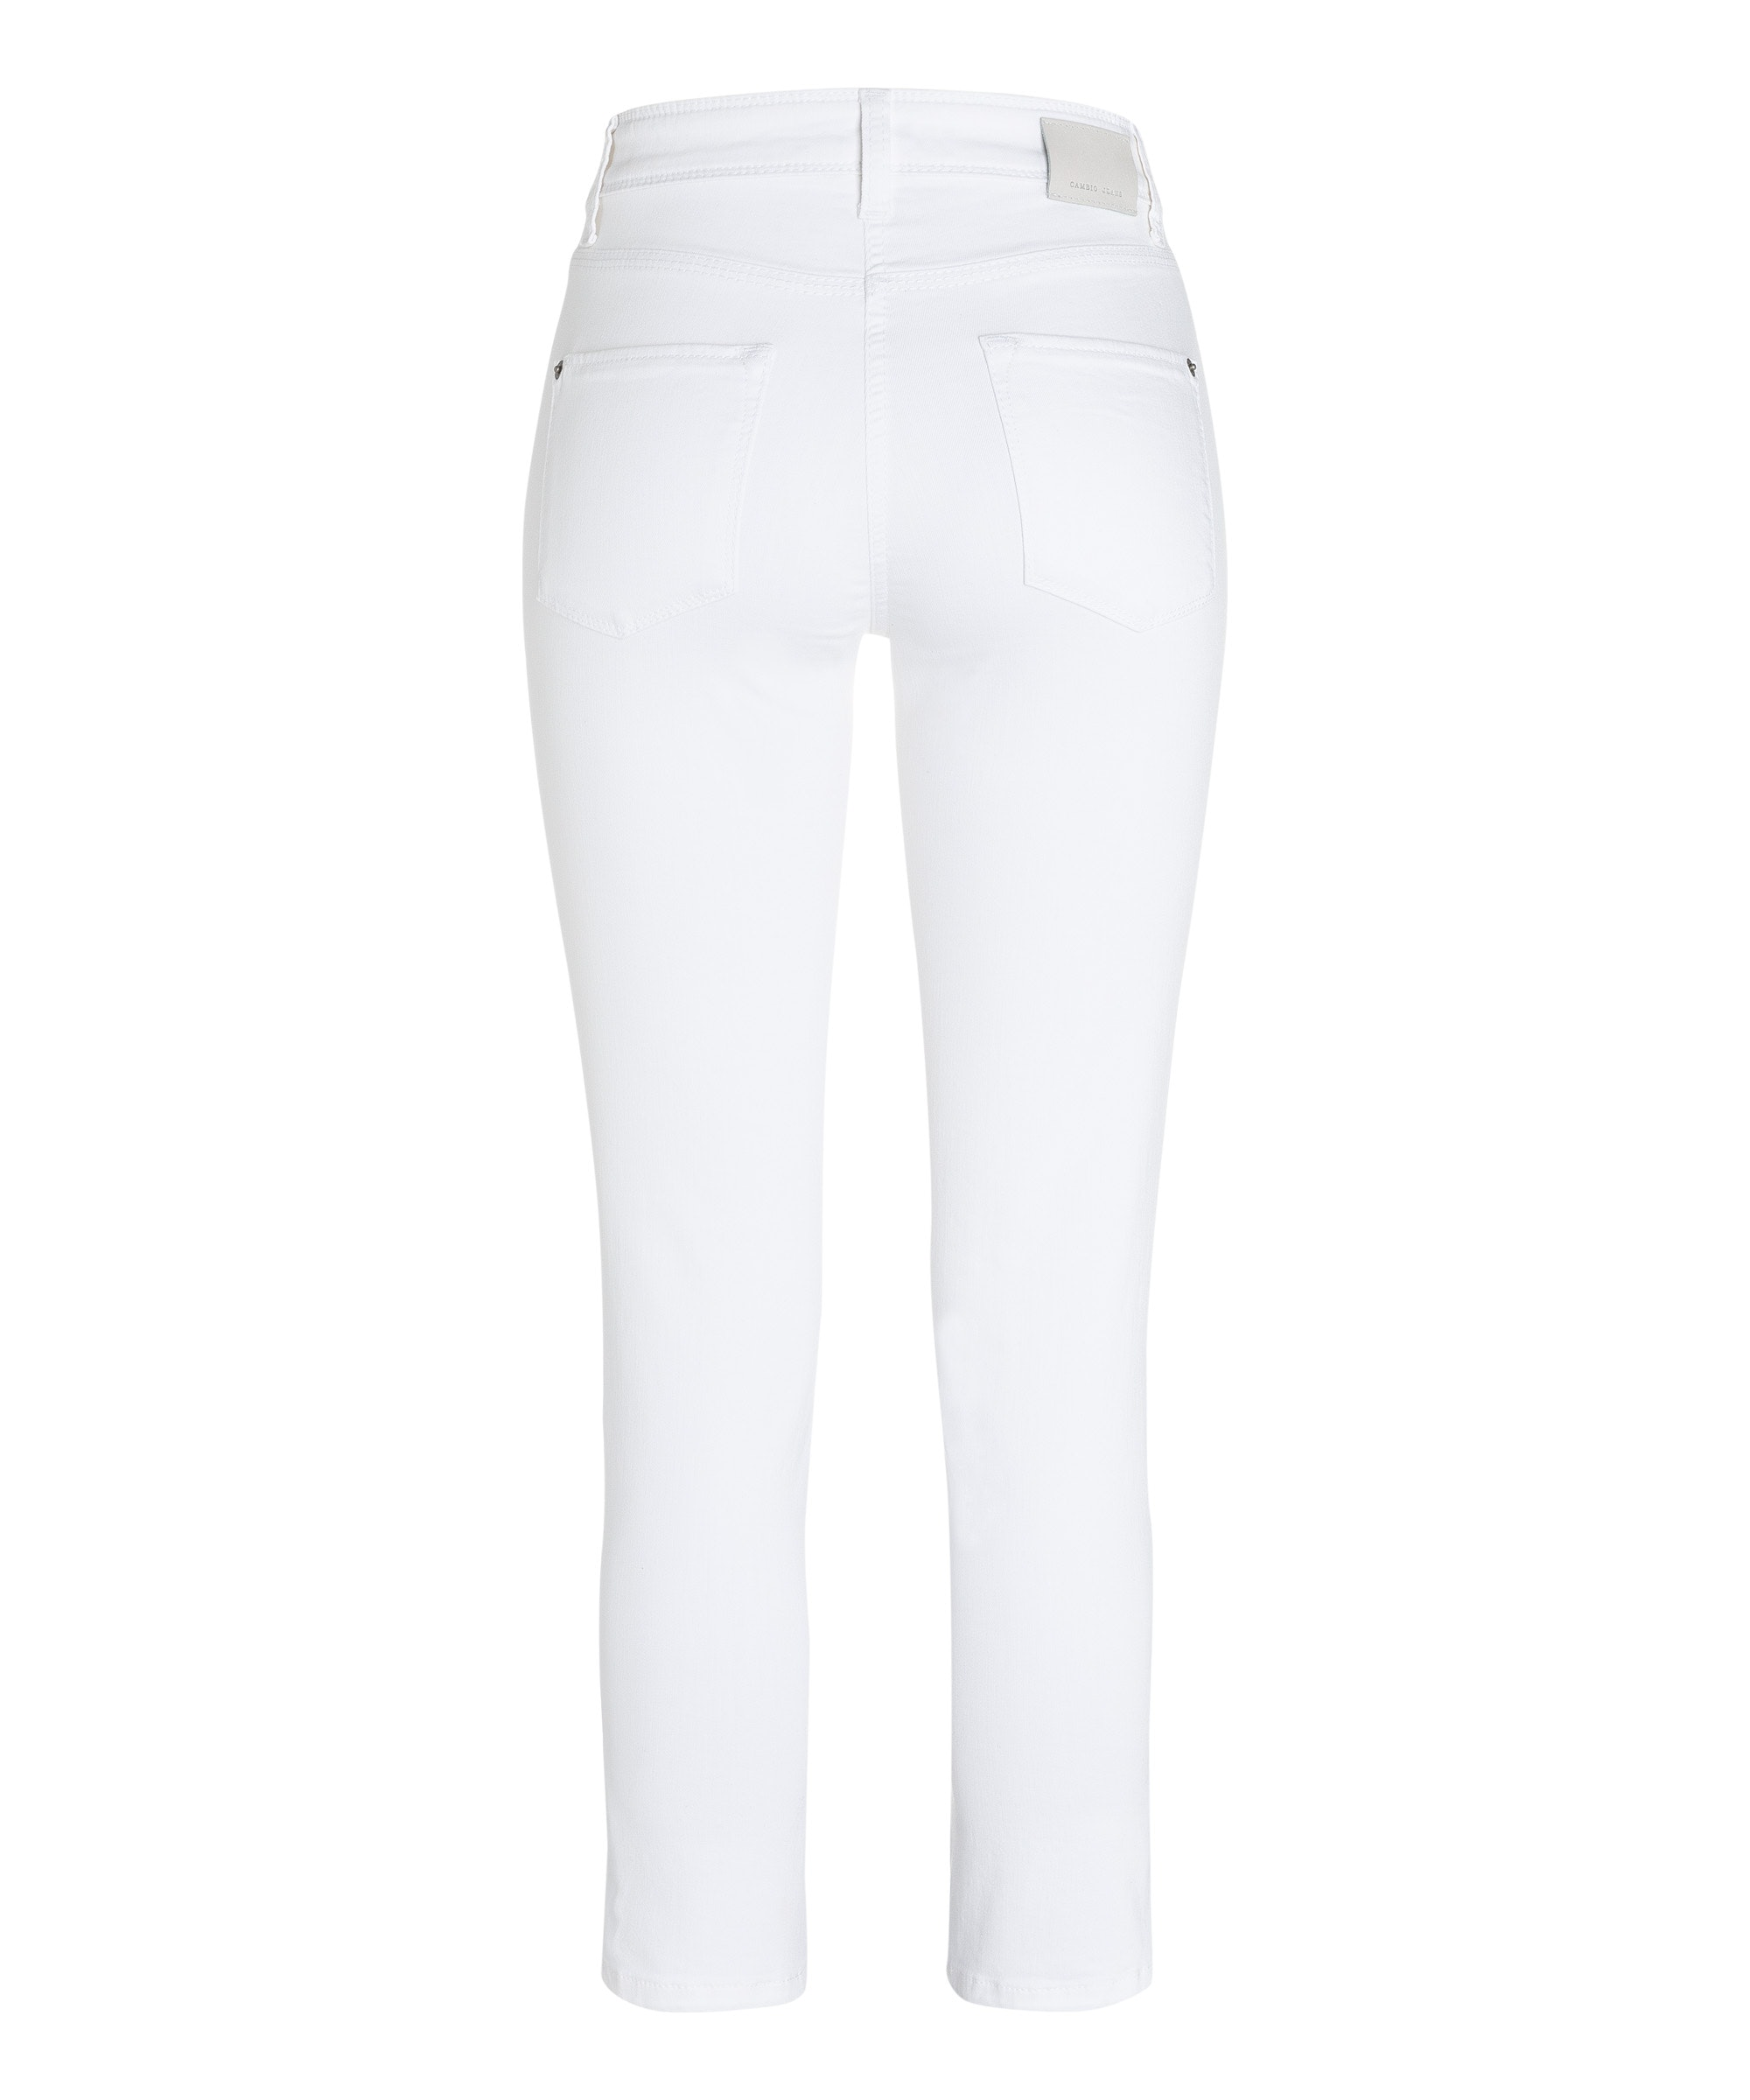 Cambio Jeans Piper short SOFTWASH WHITE